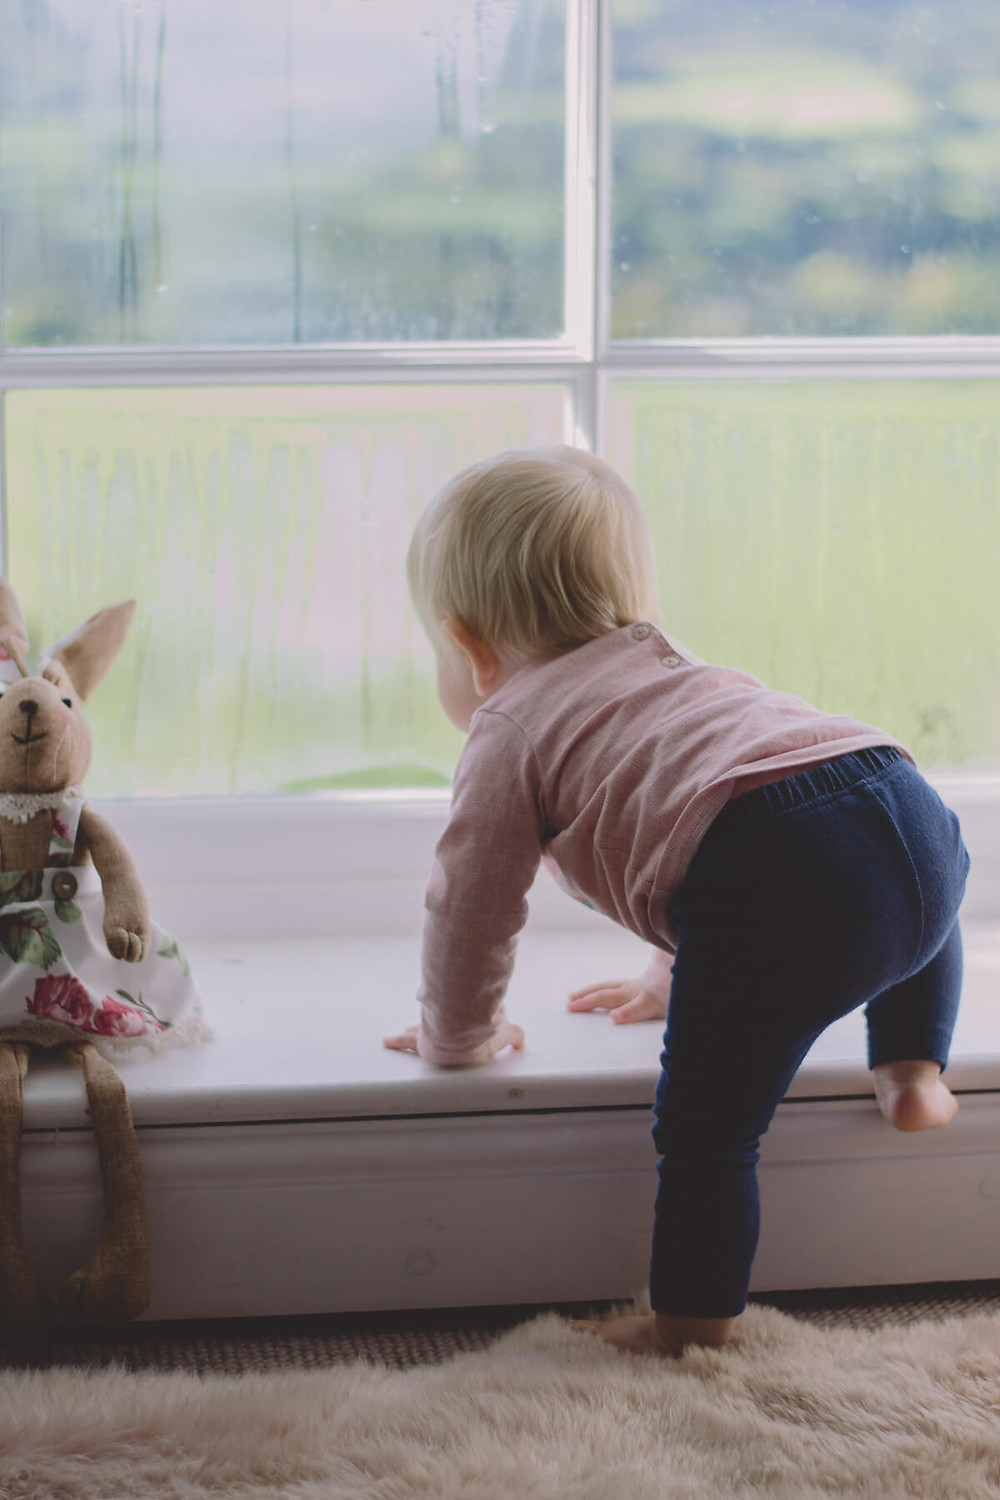 one year old girl climbs into window with bunny toy